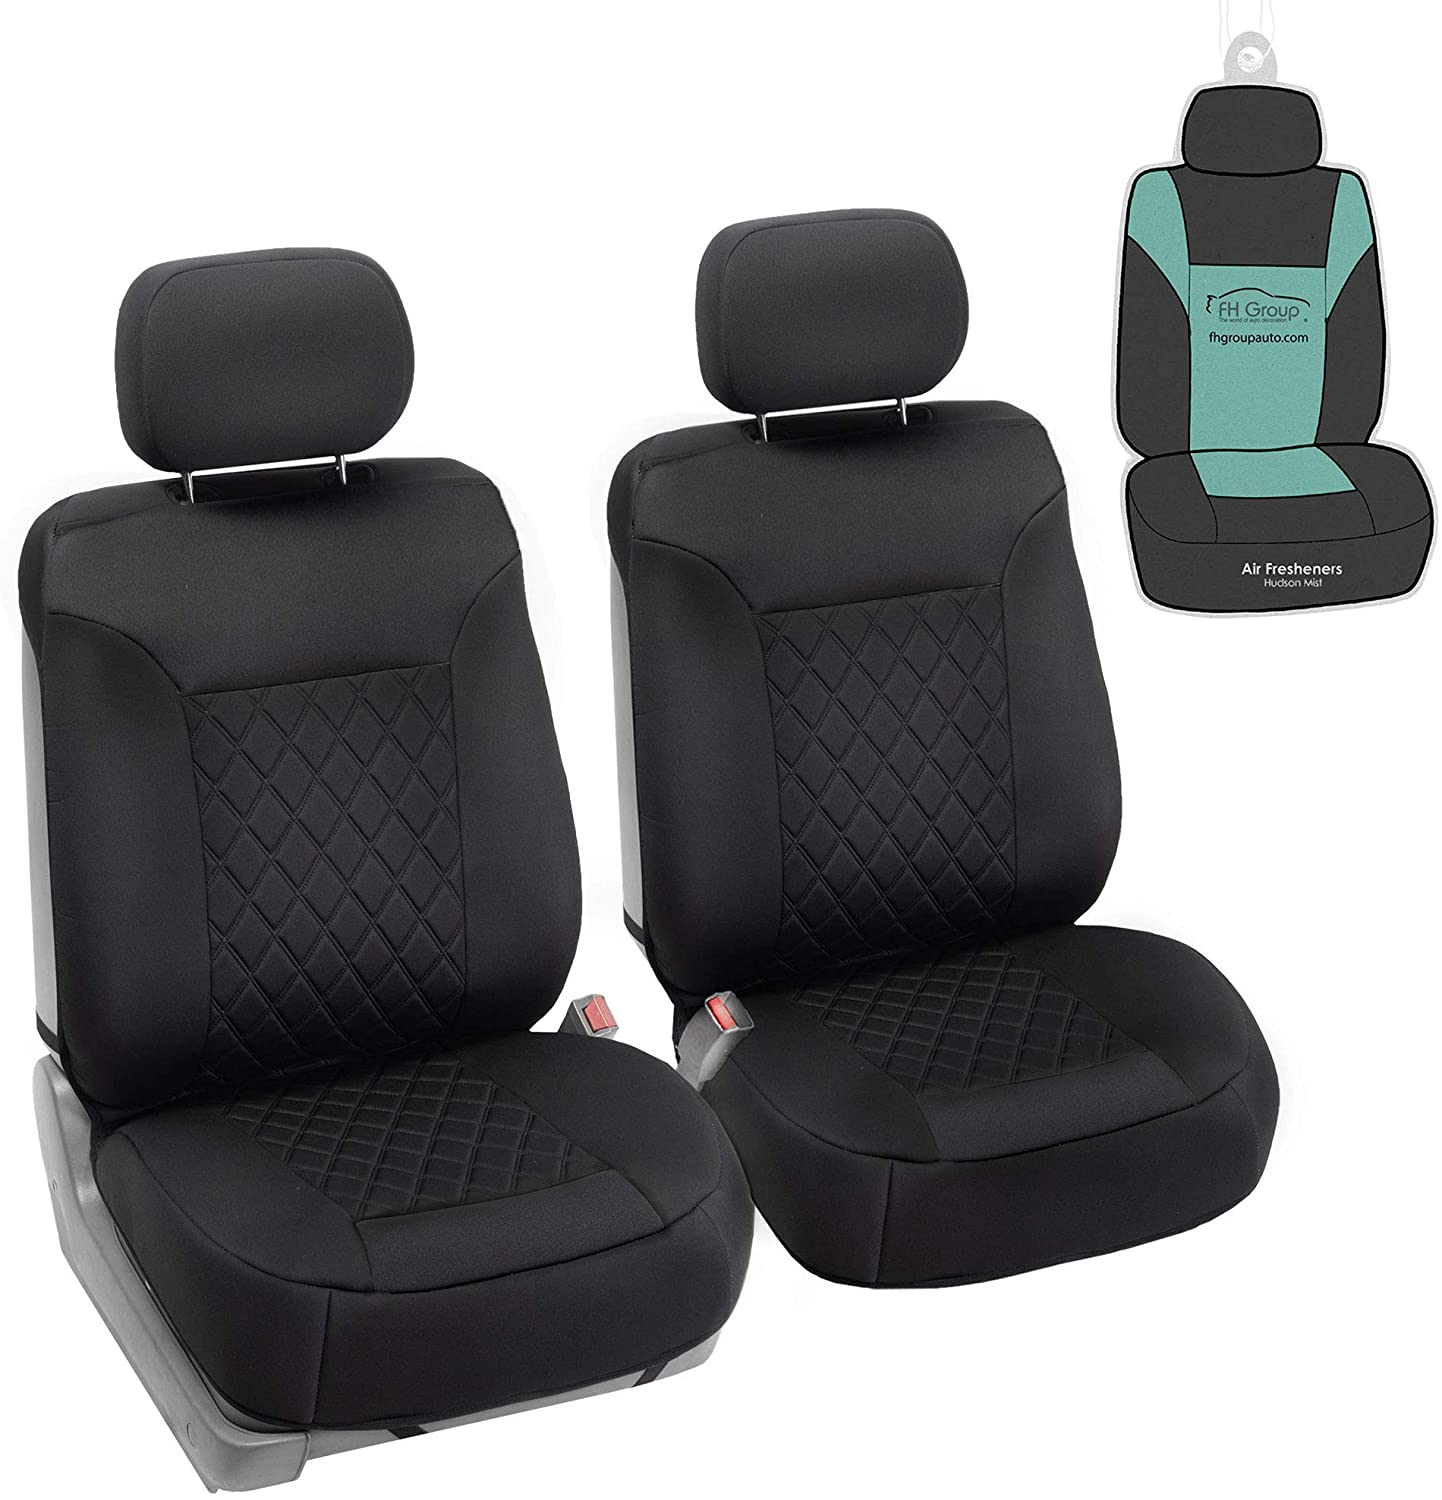 FH Group FB088102 Neosupreme Deluxe Quality Car Seat Cushions (Black) Front Set with Gift - Universal Fit for Cars Trucks and SUVs